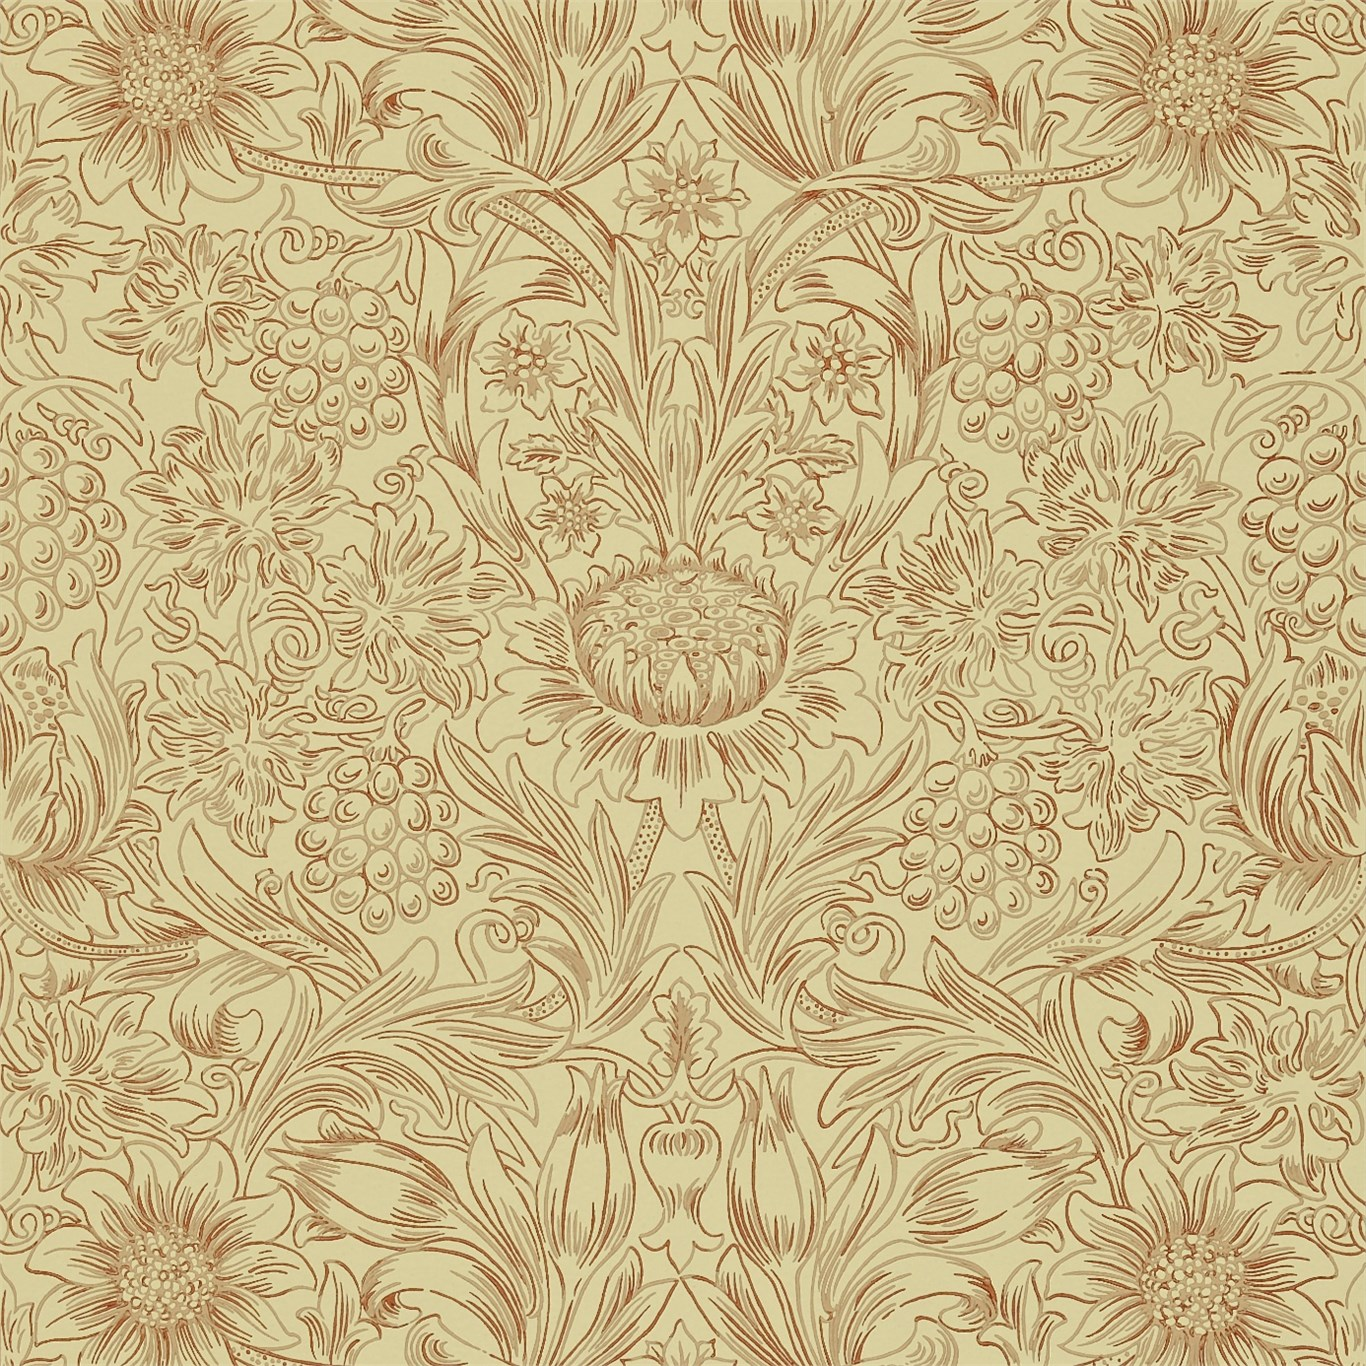 William Morris Sunflower Wallpaper 6